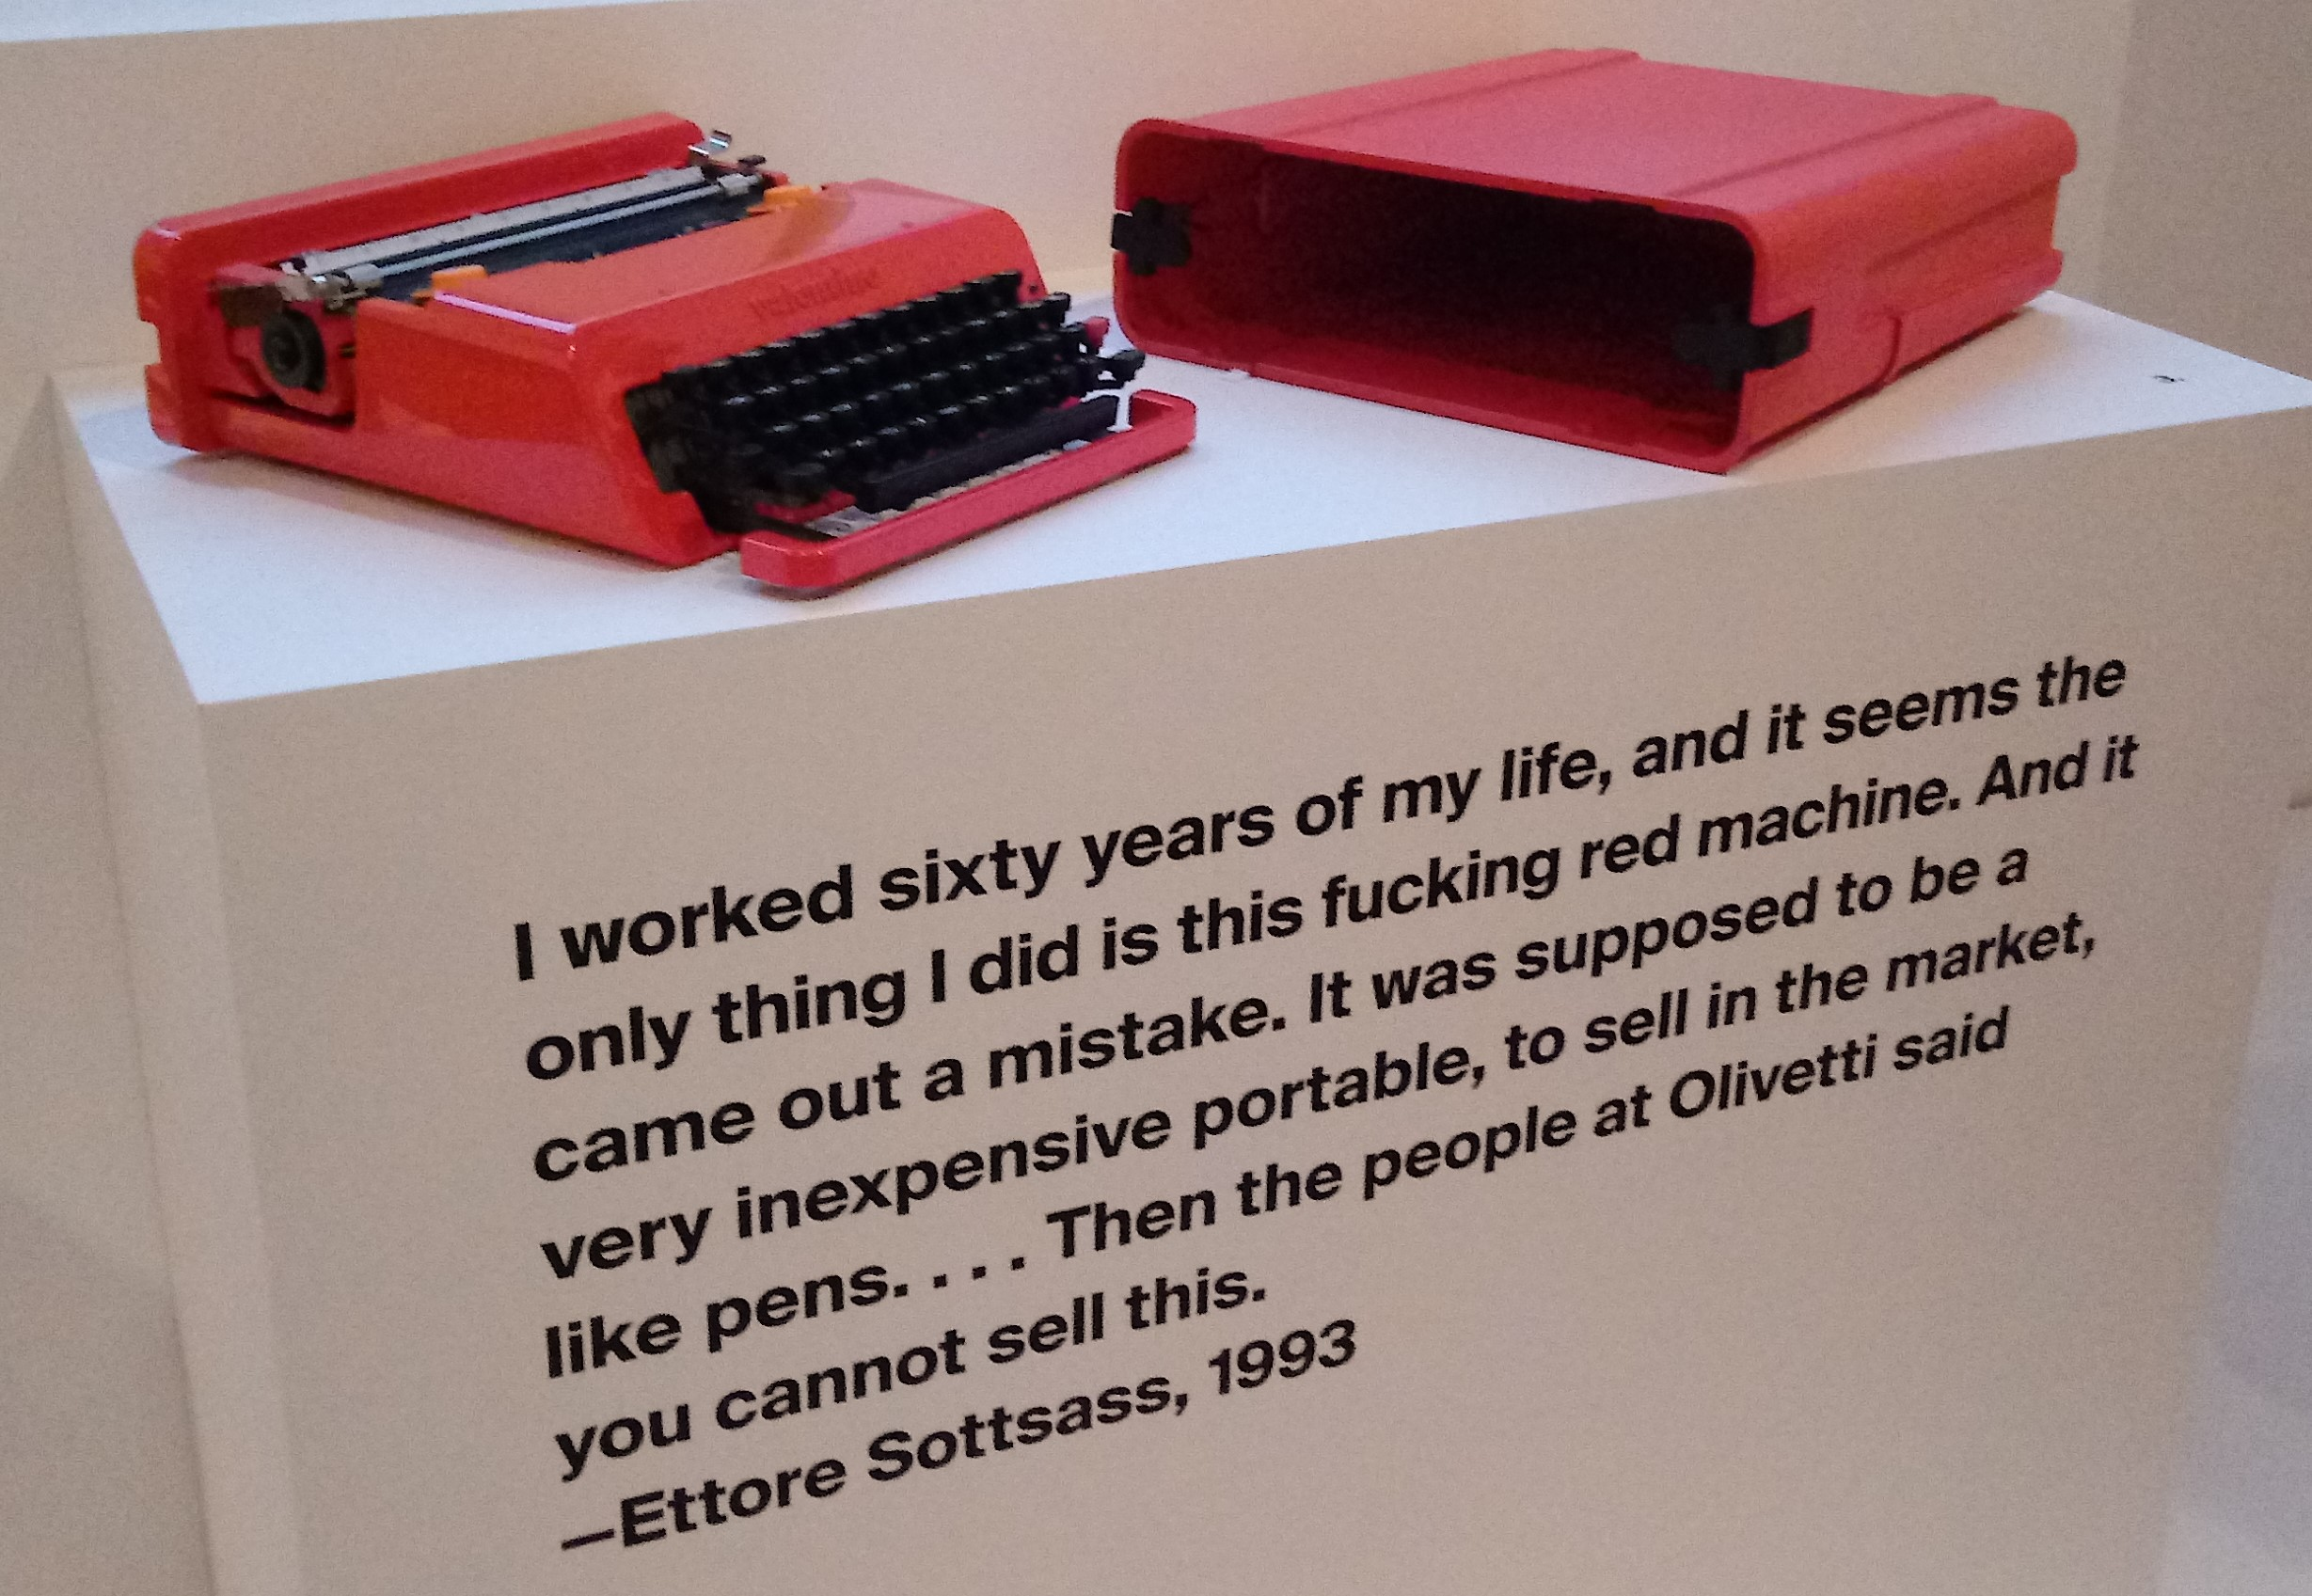 Sottsass grew frustrated being identified with a singular product,. despite a rich career across many media.